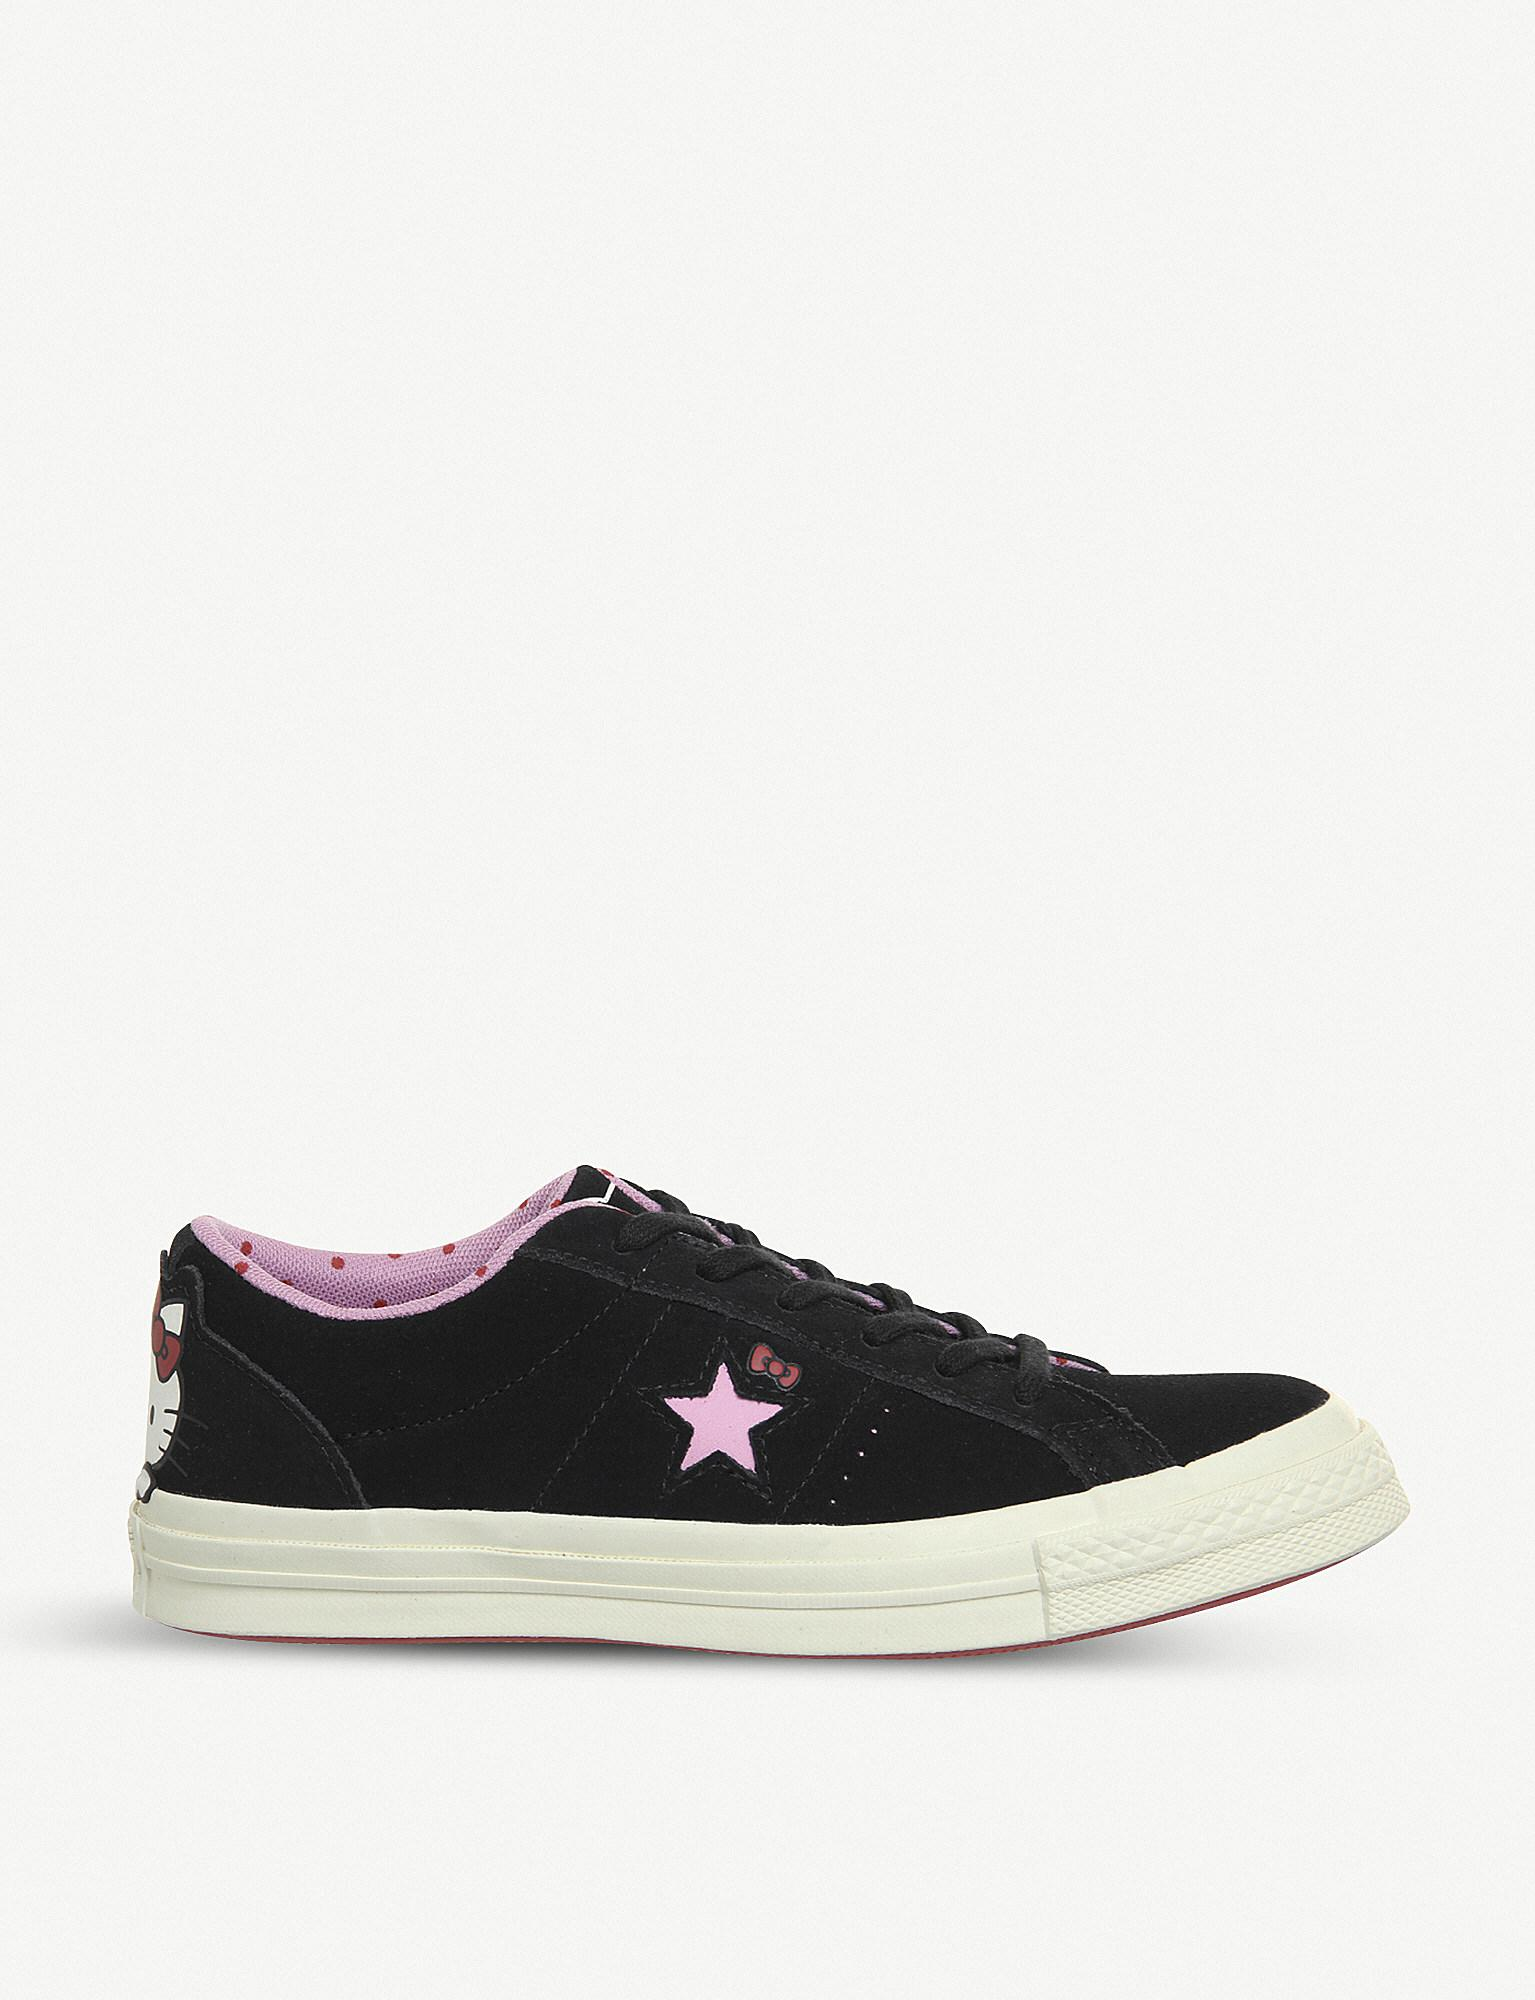 862ac976d522e3 Converse Hello Kitty One Star Low-top Suede Trainers in Black - Lyst